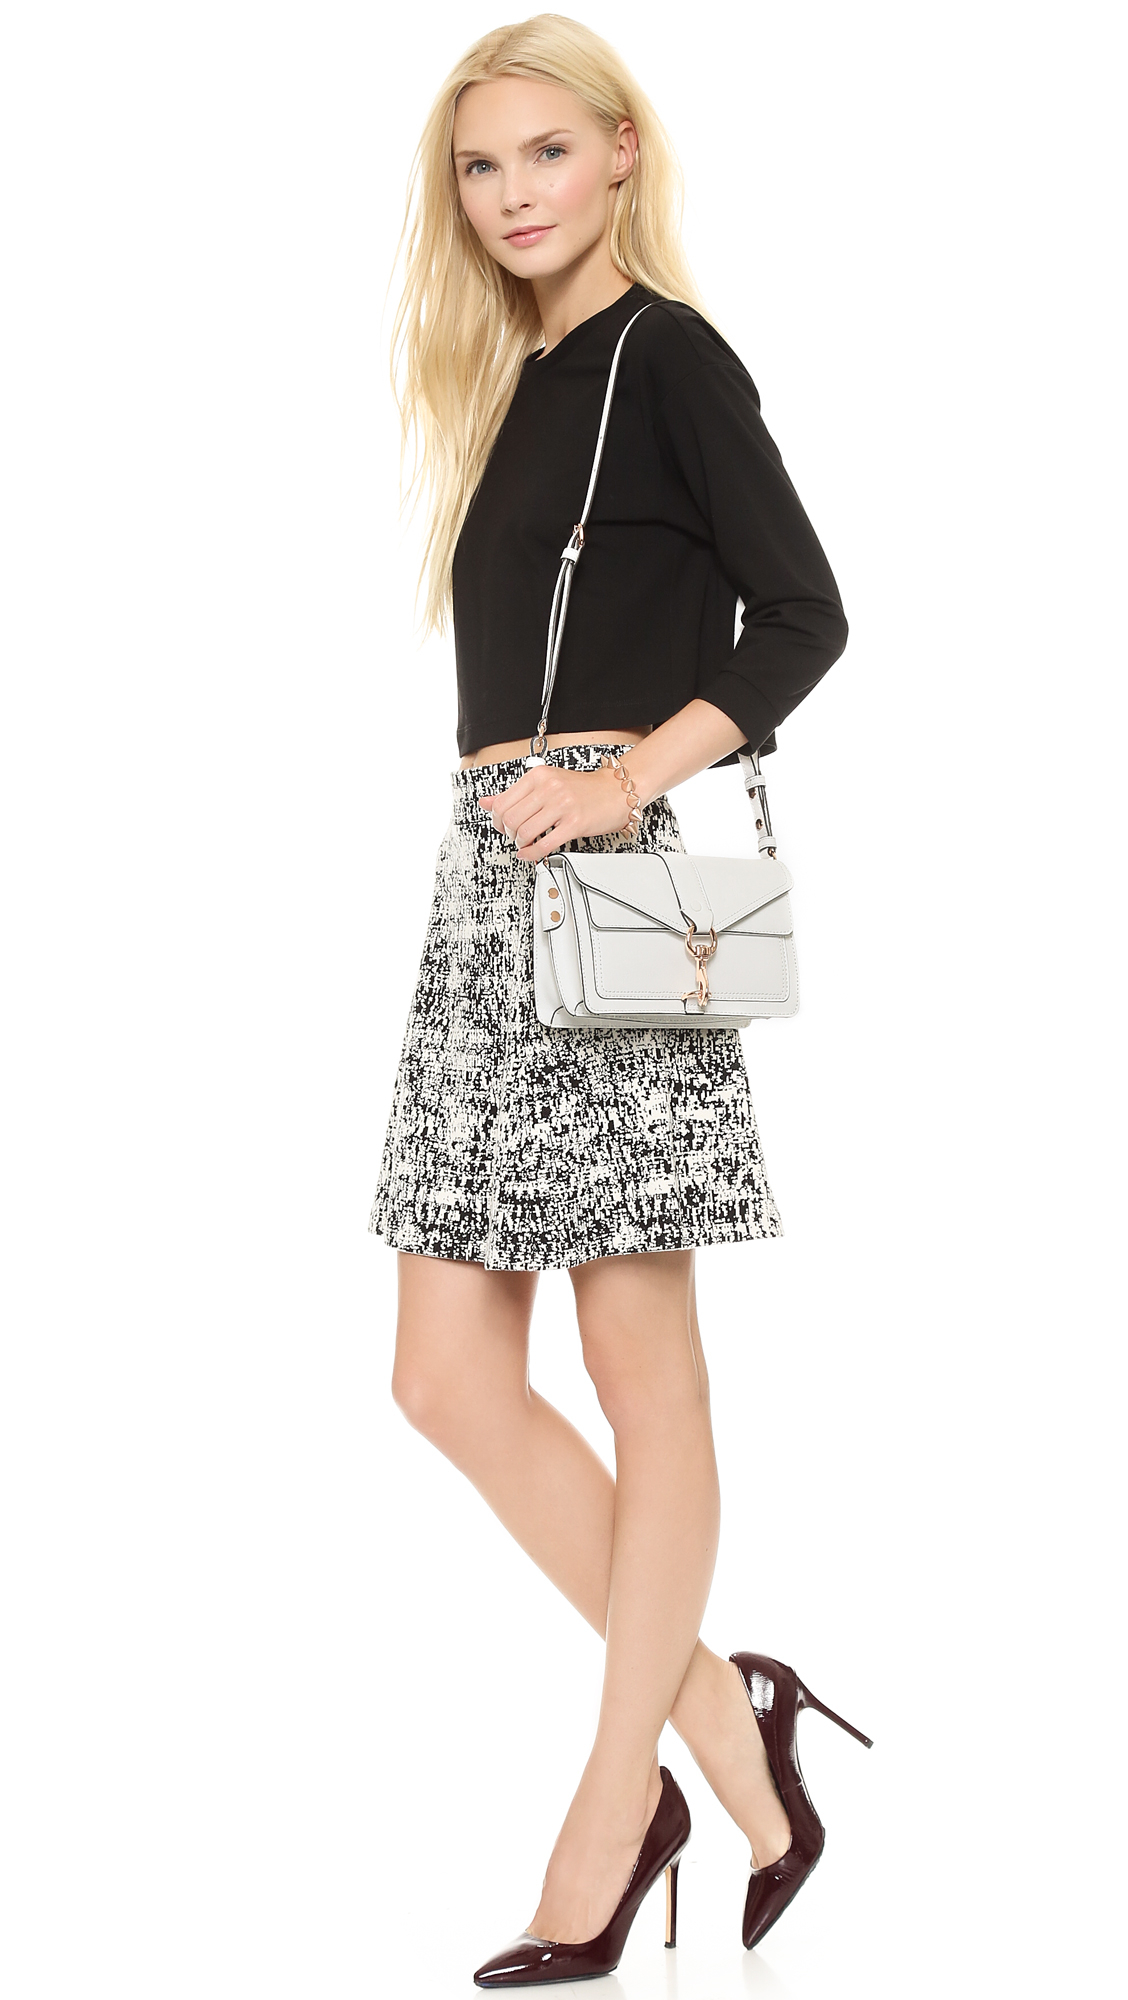 Gallery Previously Sold At Bop Women S Rebecca Minkoff Mini 5